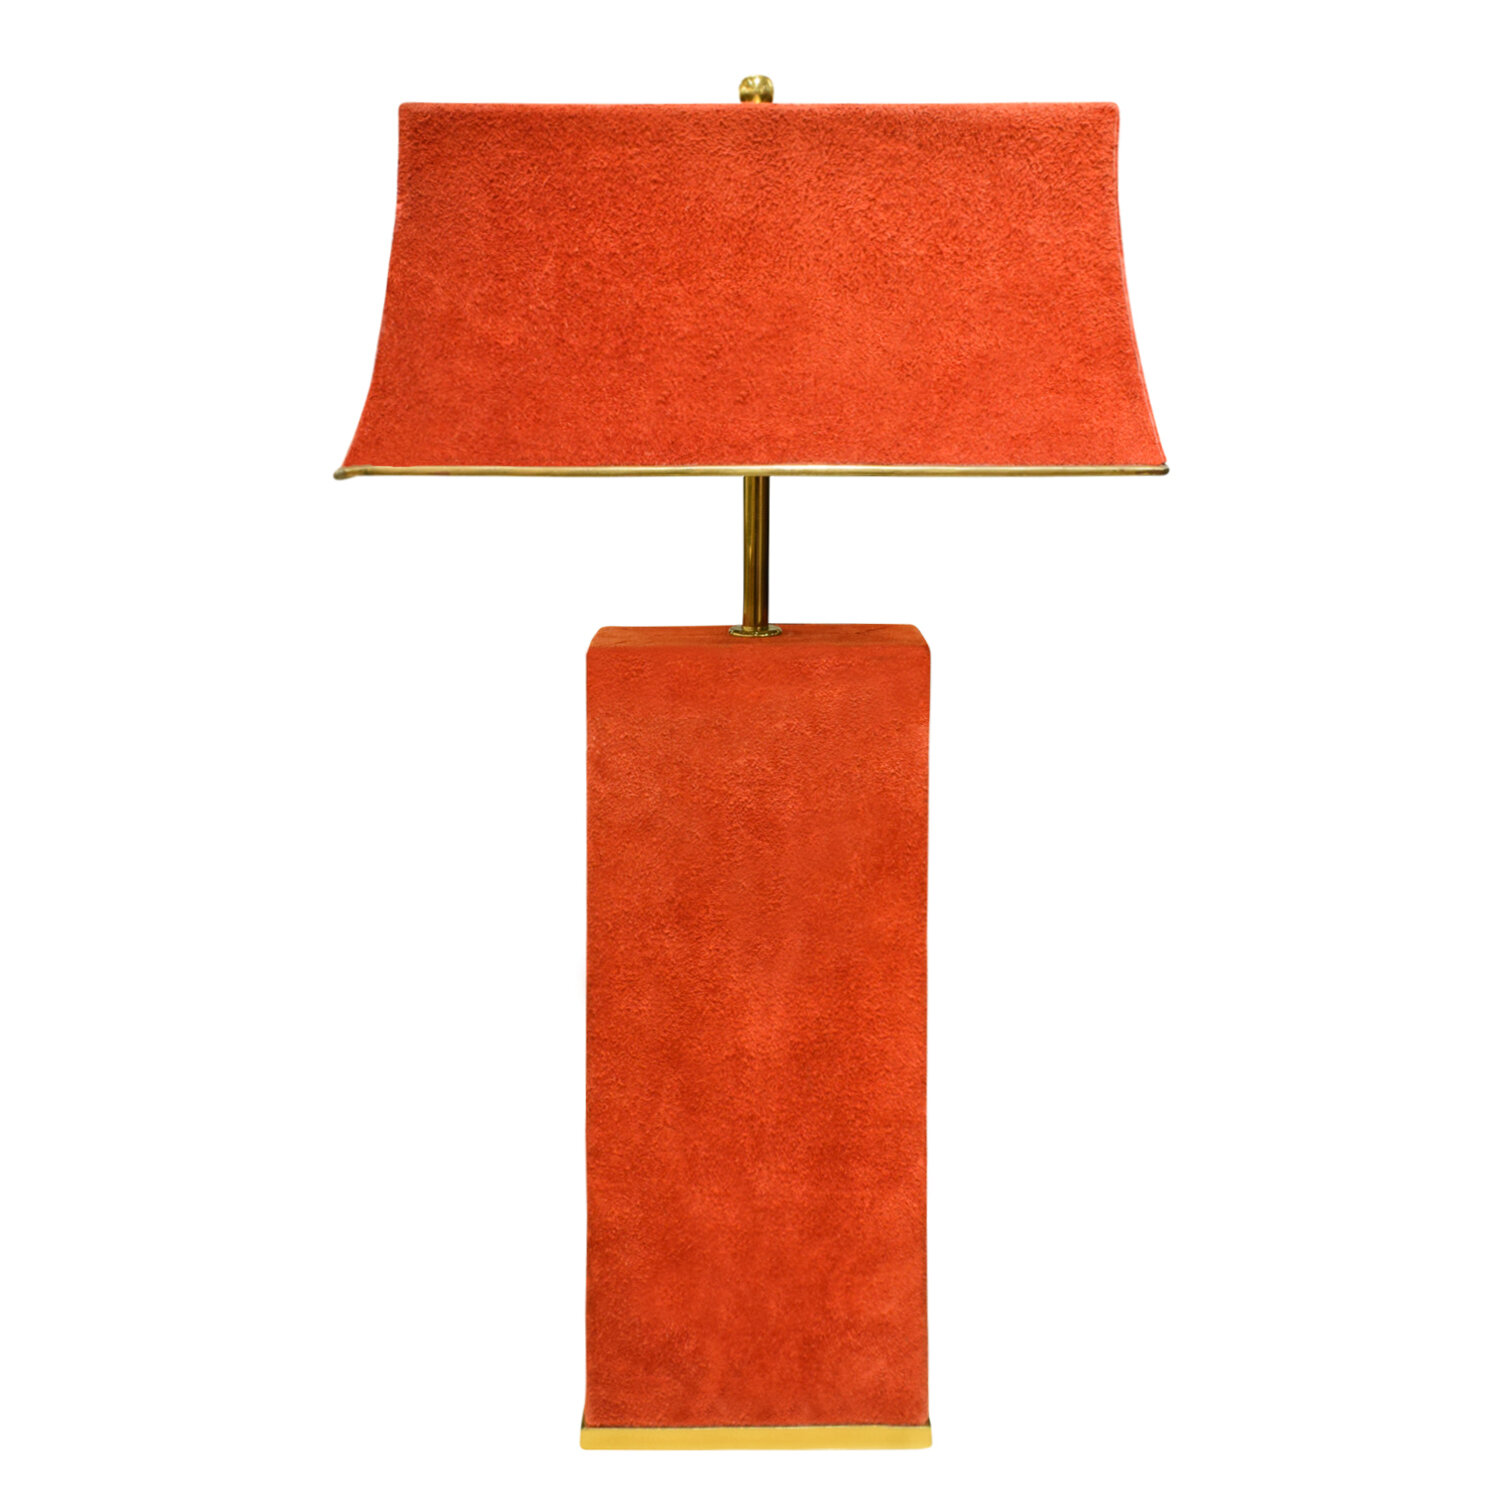 Springer 65 red suede over brass tablelamp290 main.jpg